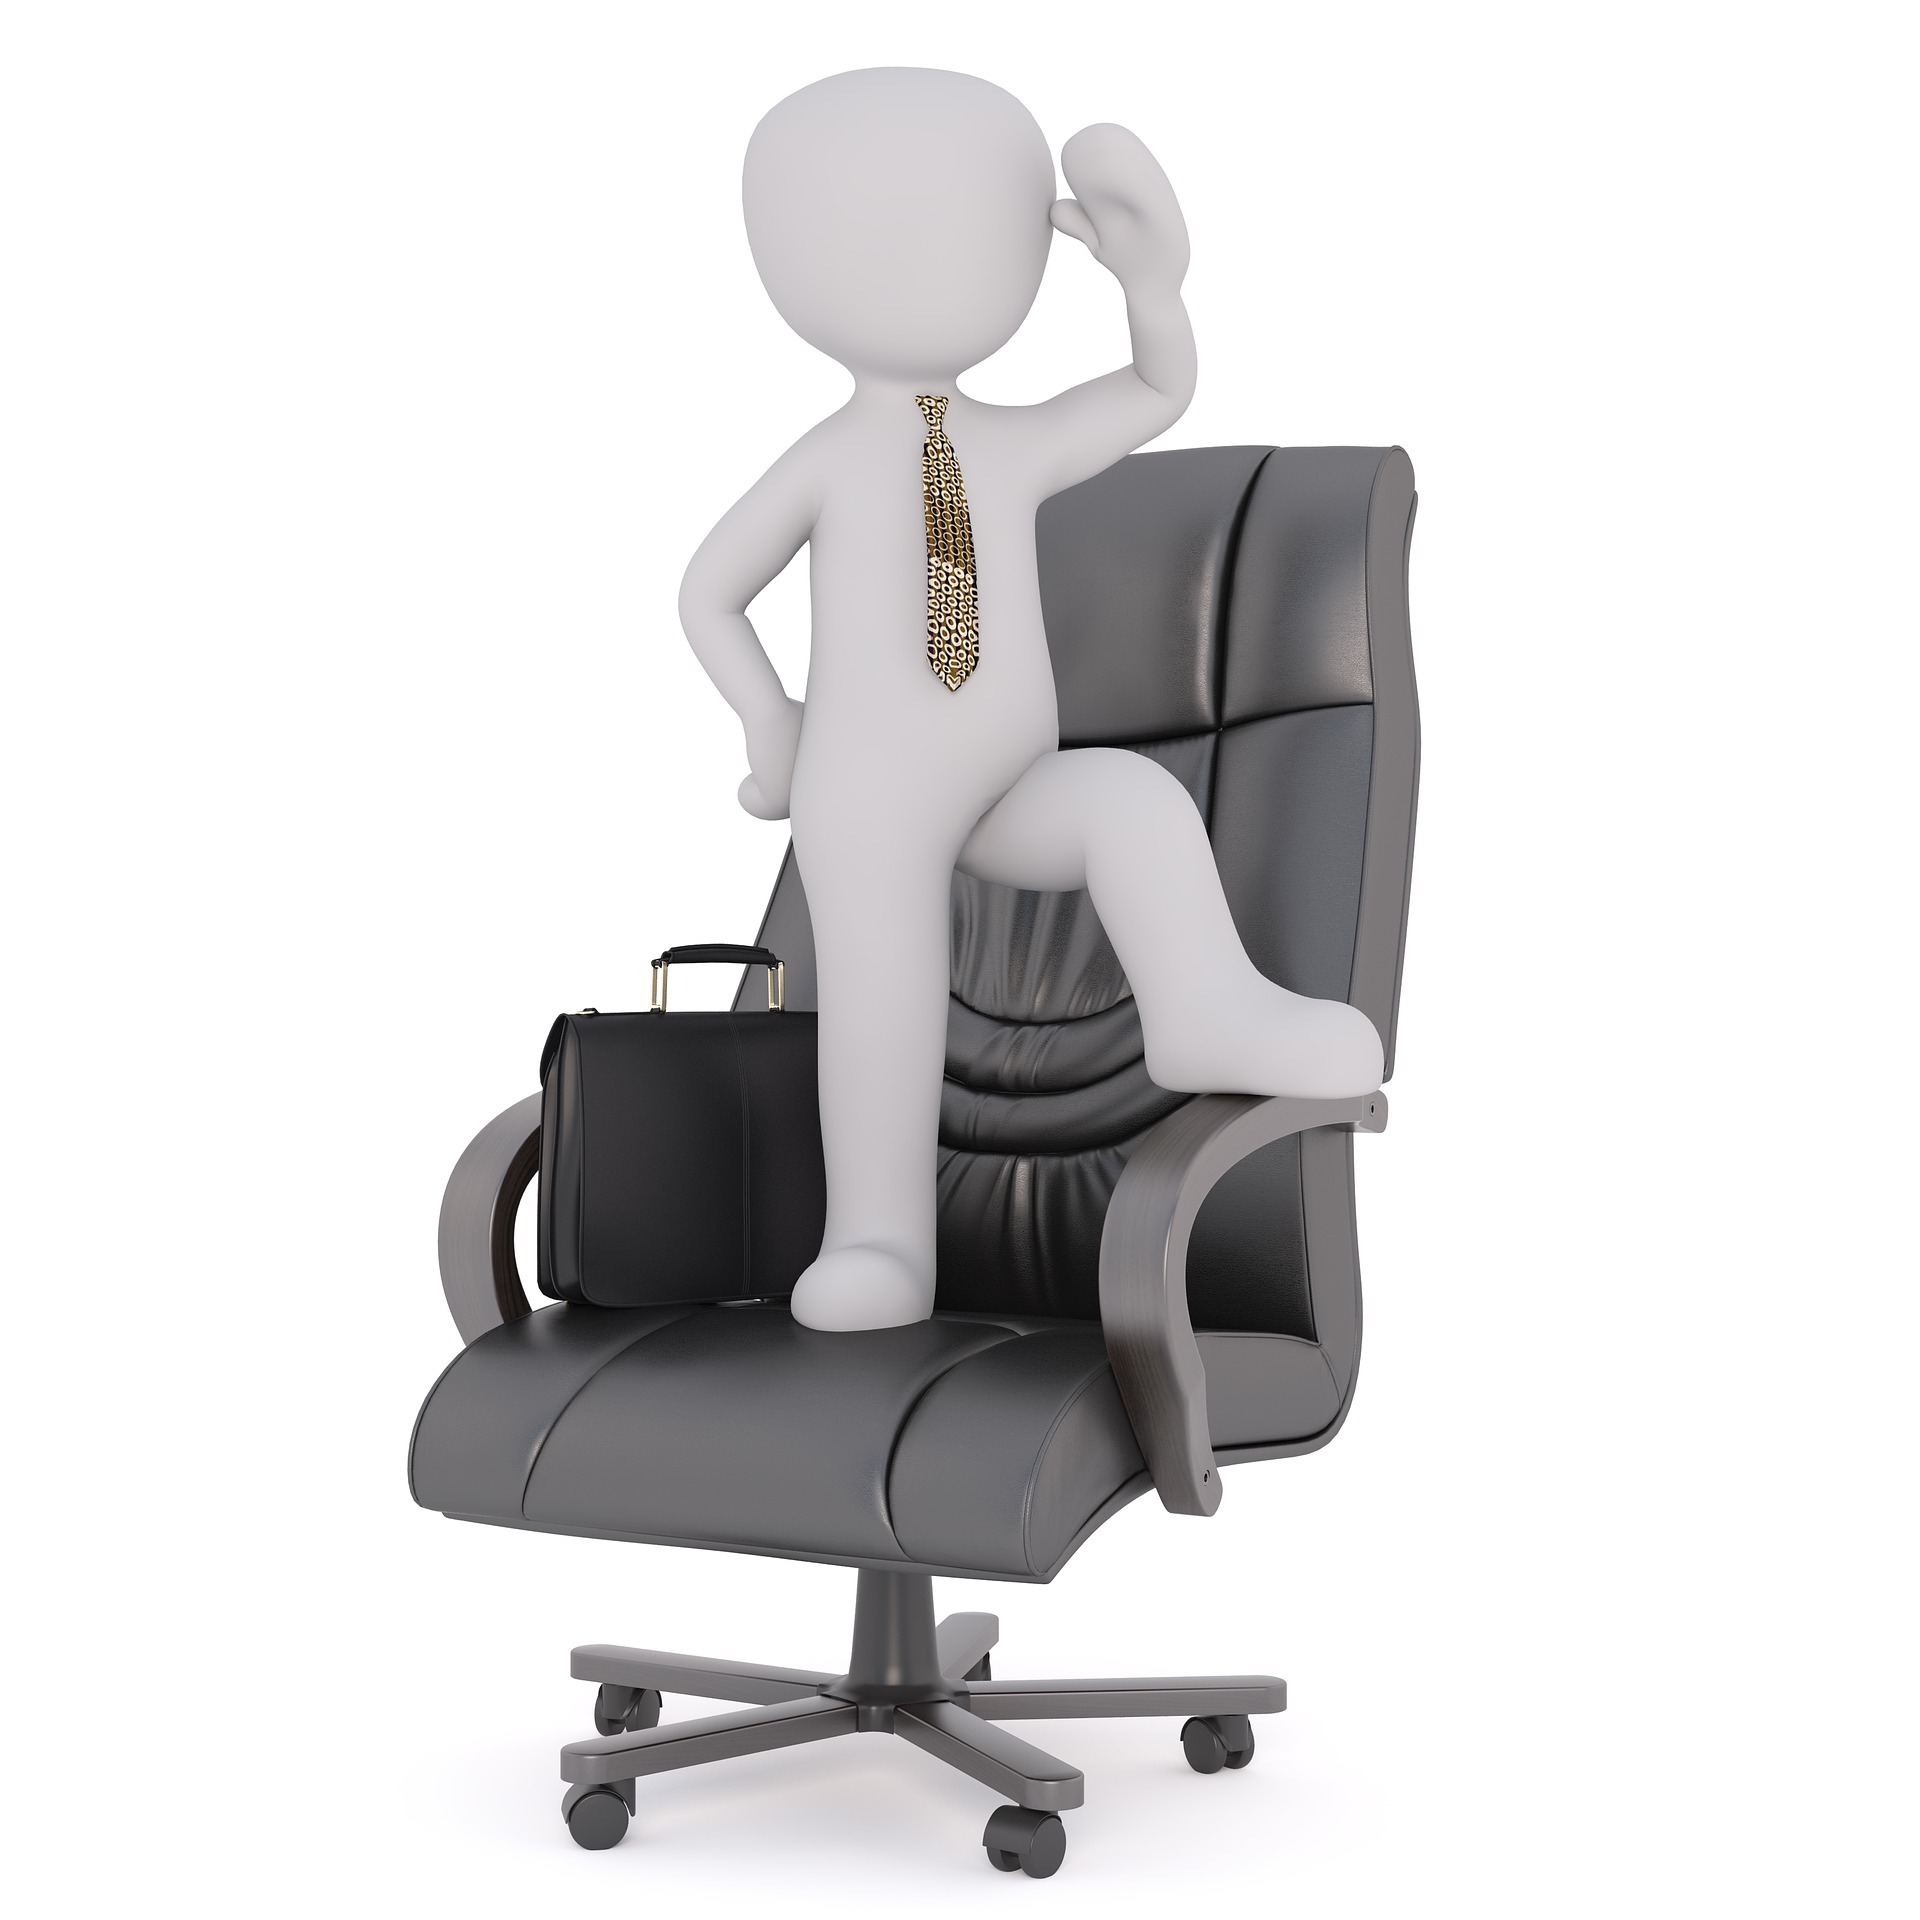 4 Ways to Identify The Best Back Support Chairs